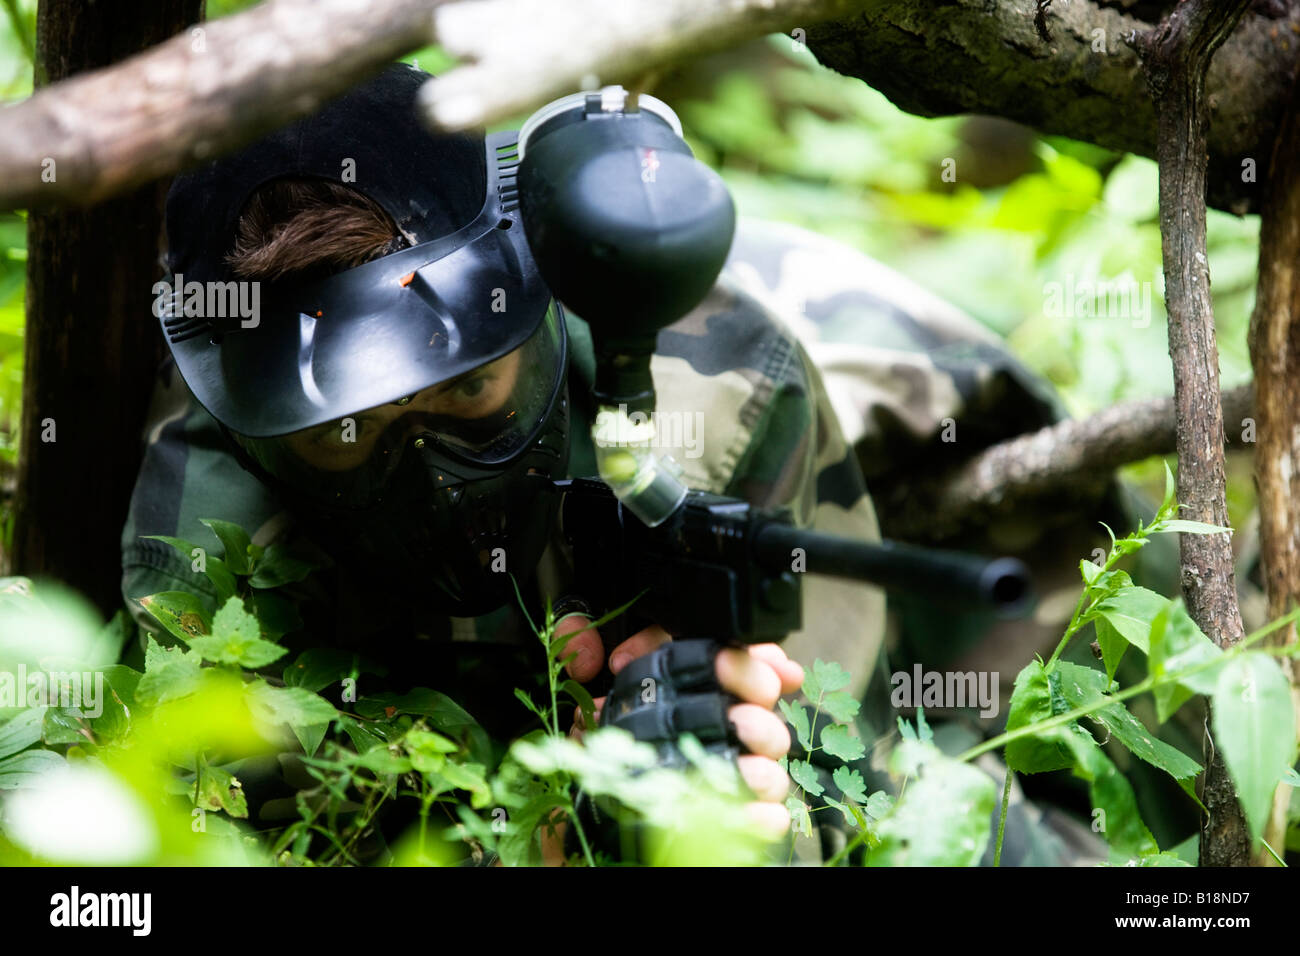 Paintball sniper - Stock Image